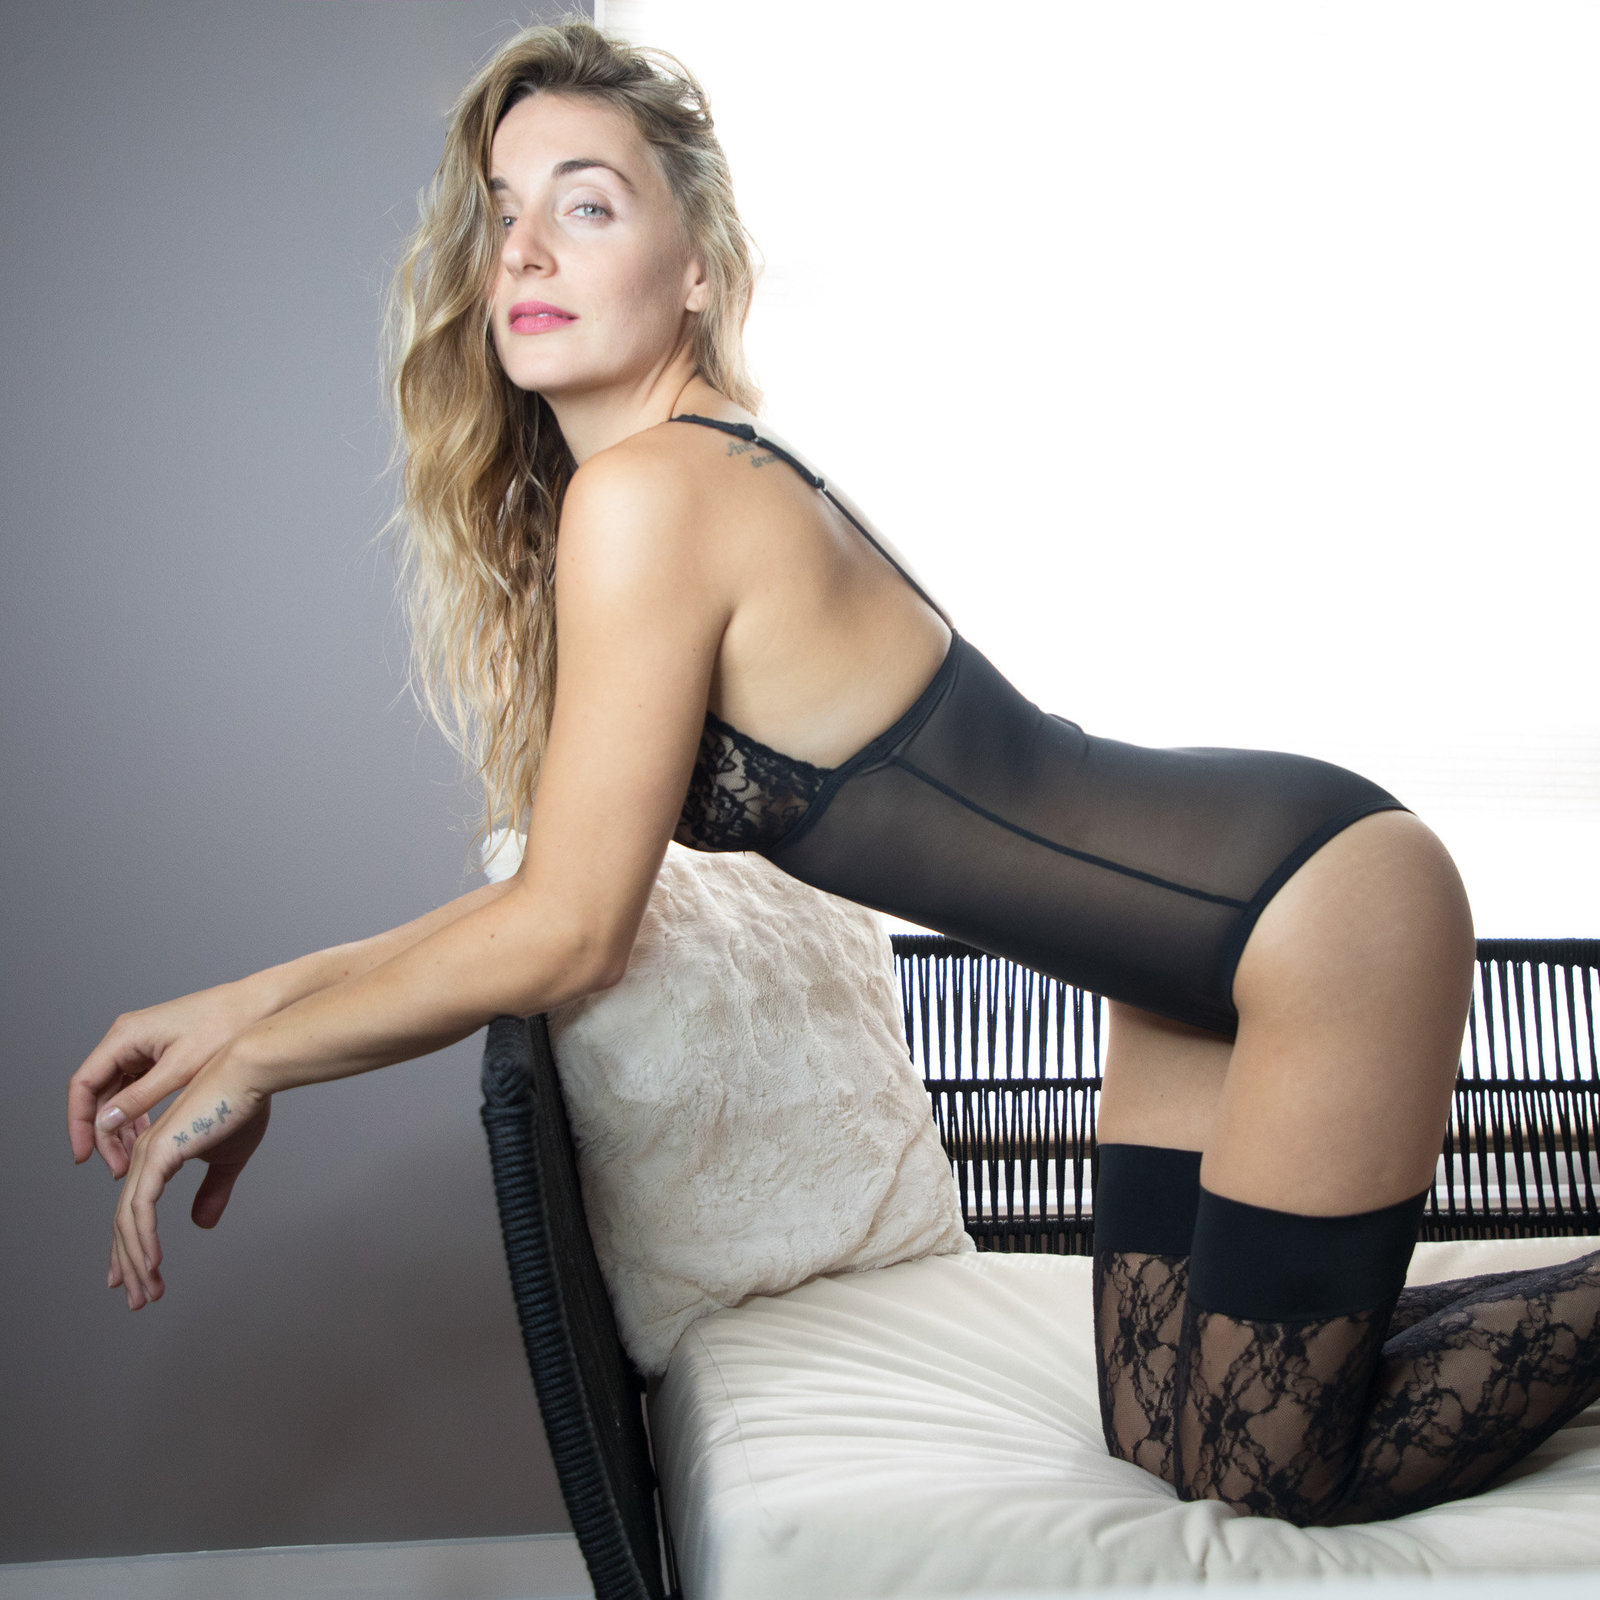 Celia arched over the couch in black lingerie and thigh high tights